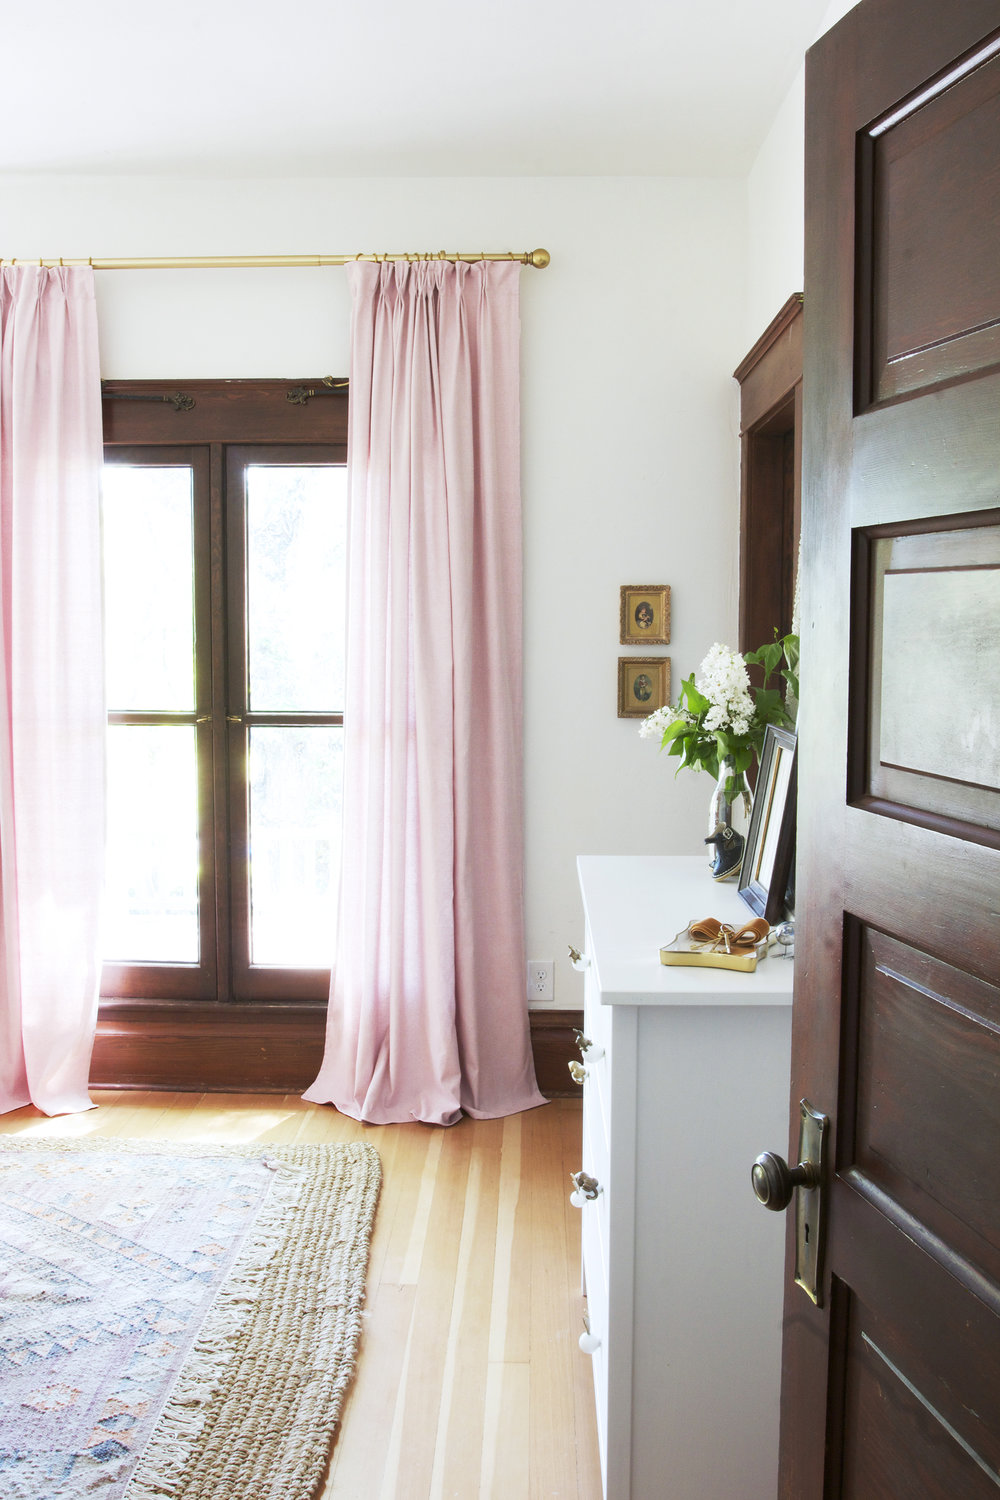 Diy Pinch Pleat Curtains How To Make Budget Ikea Curtains Look